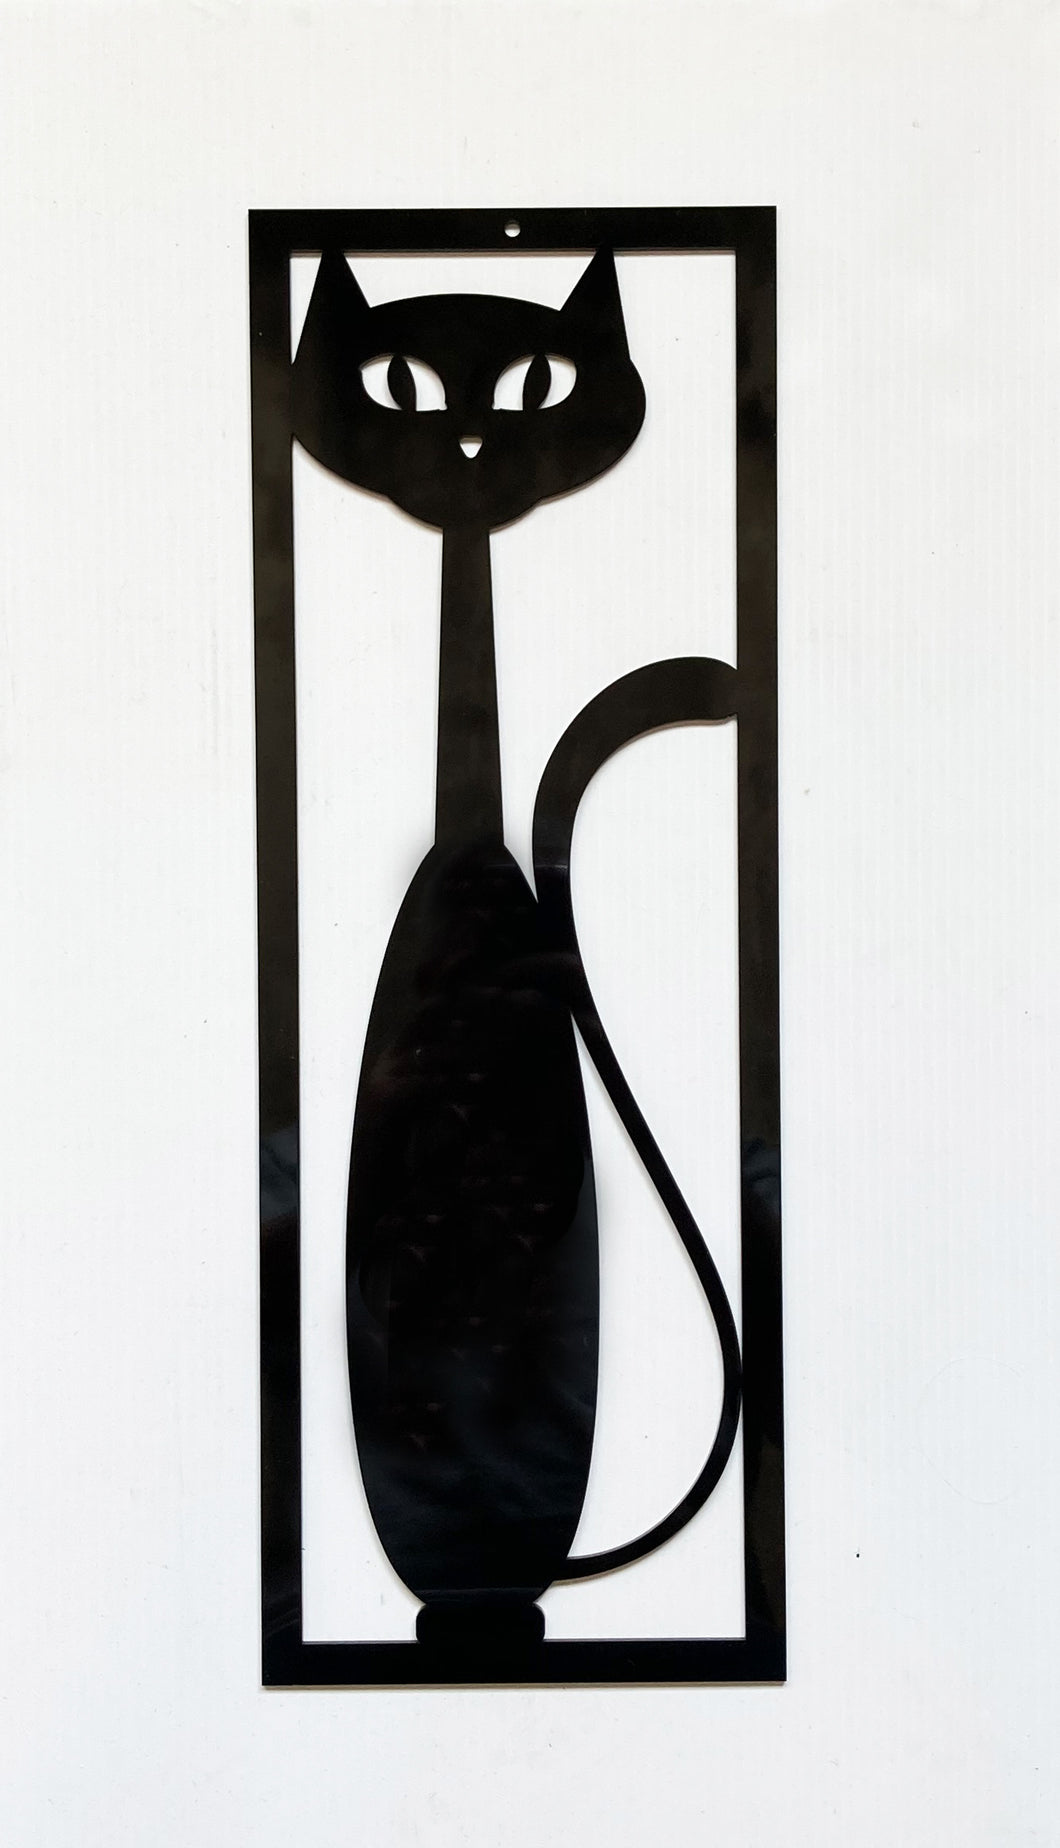 Mid Century Modern Black Cat Wall Decor - Retro Black Cat